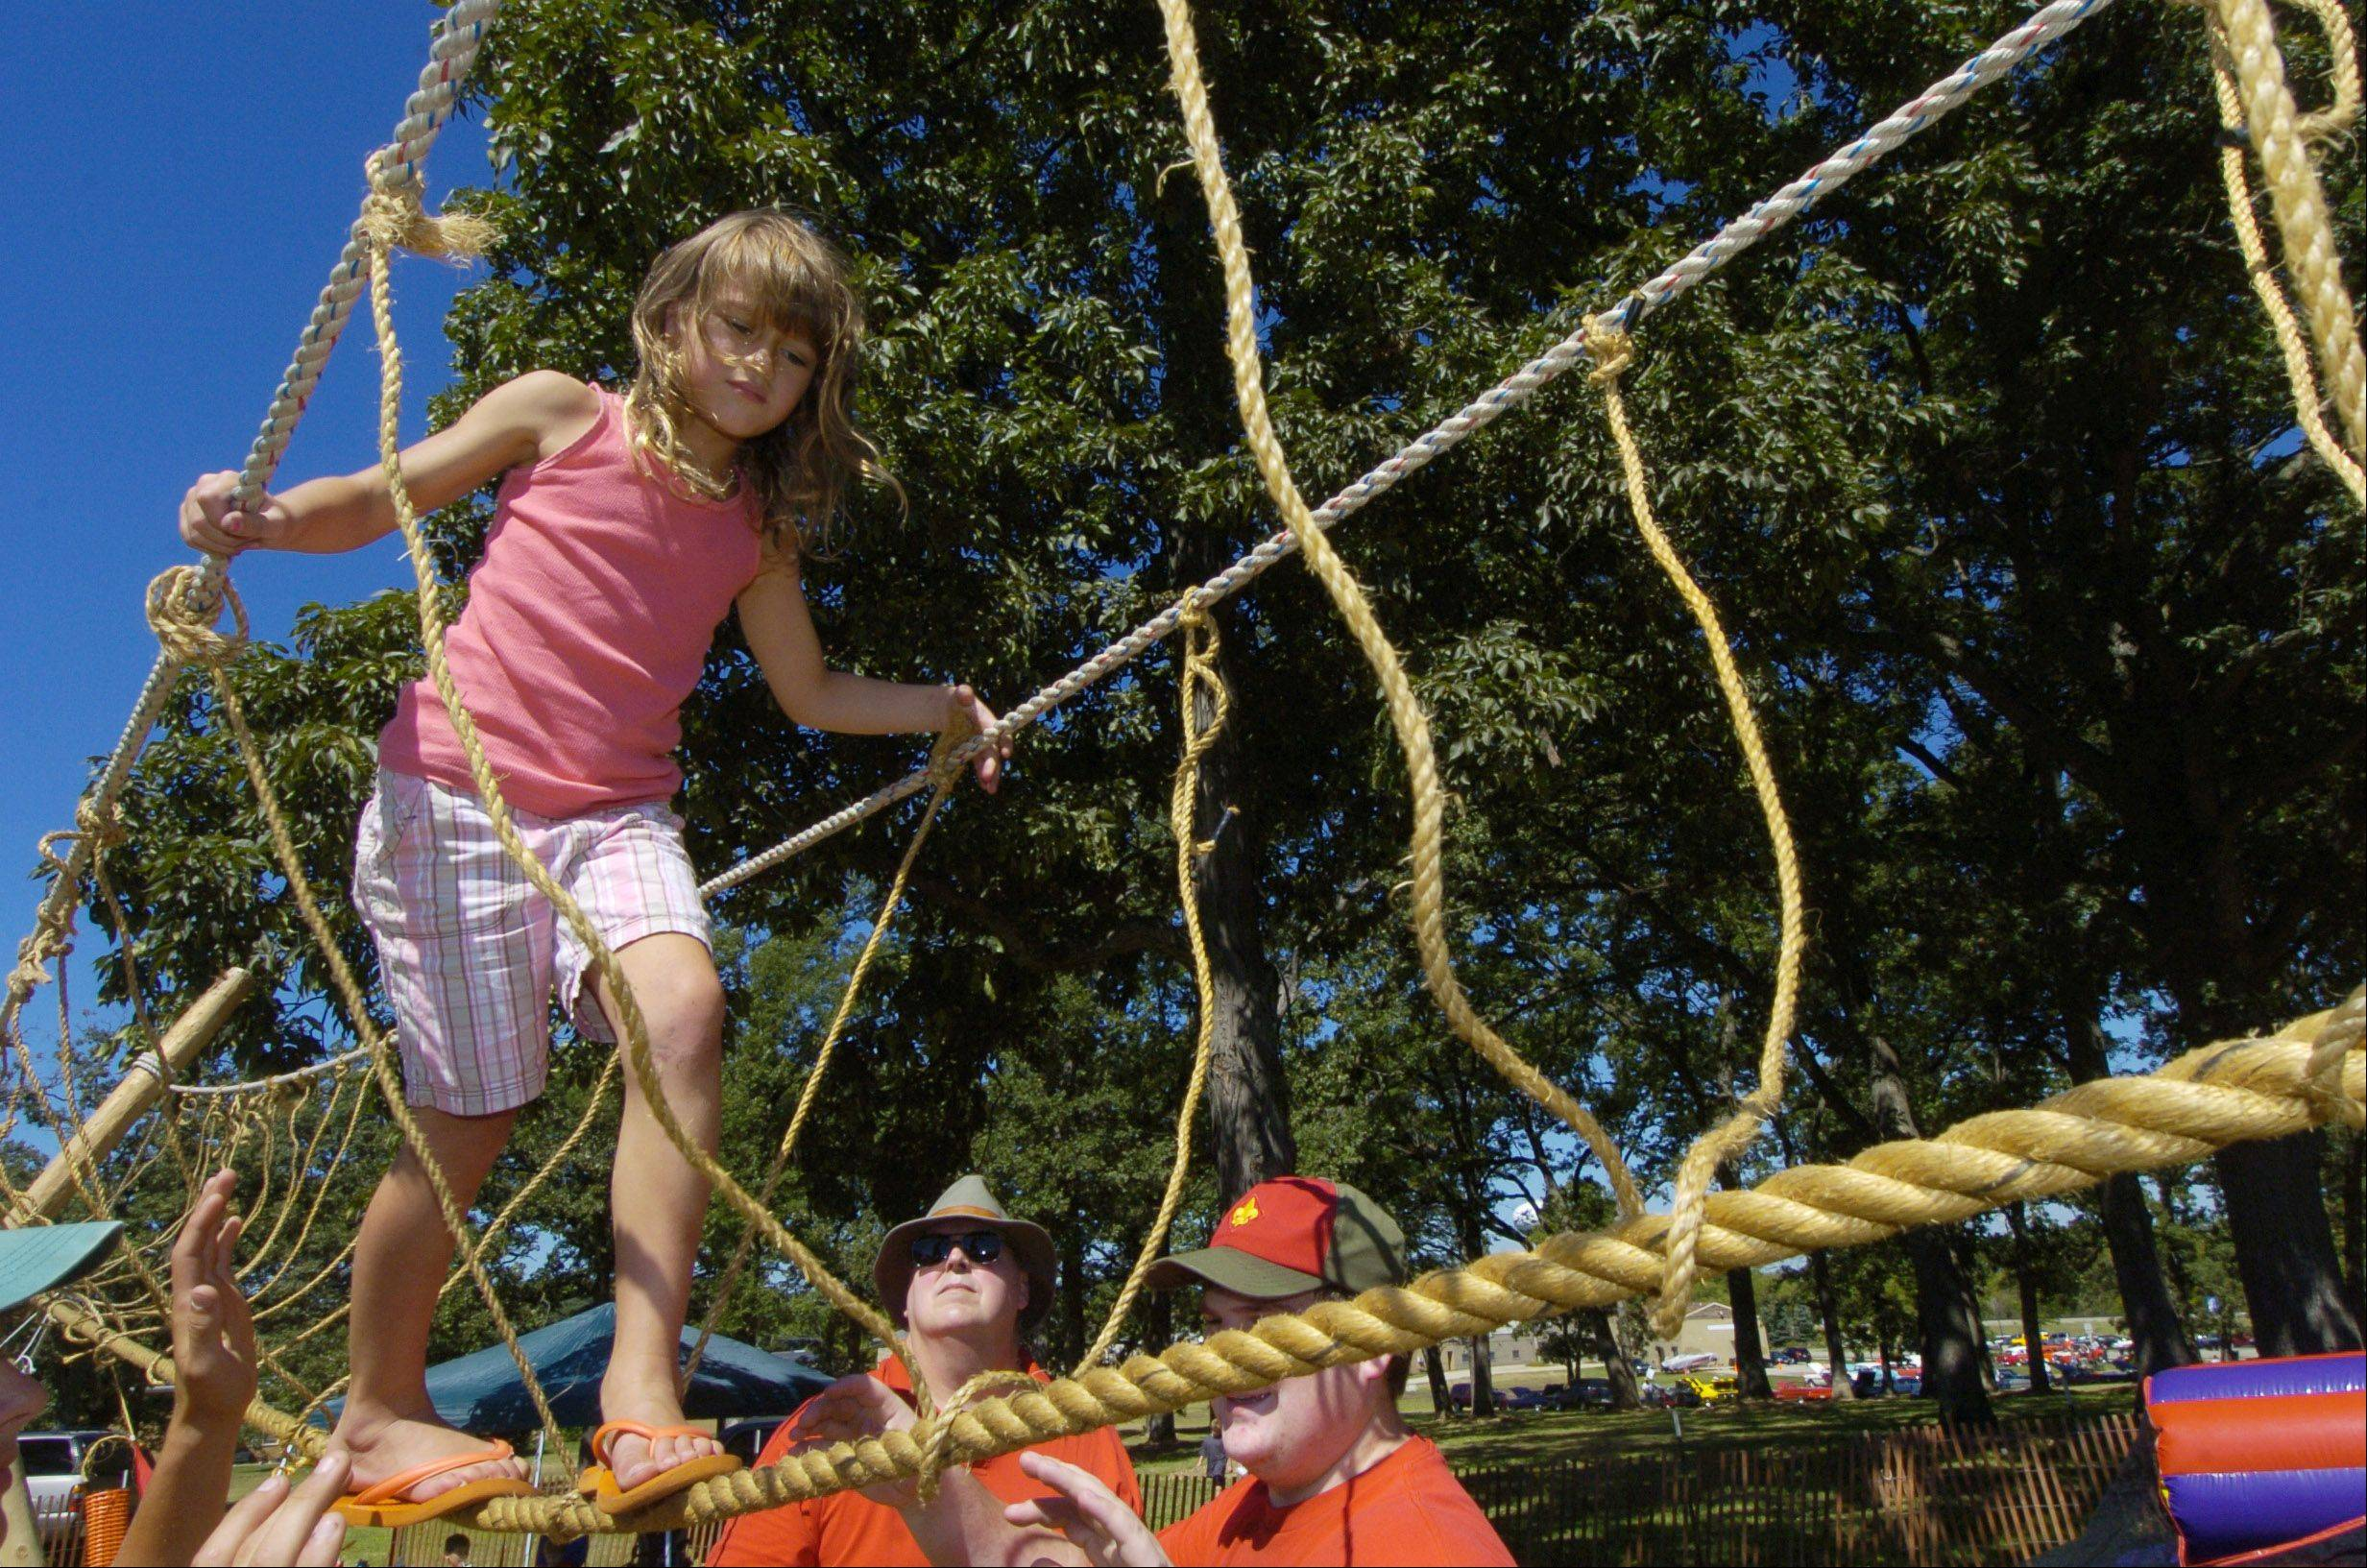 There will be plenty of fun for the kids at the Round Lake Home Town Festival this Saturday.